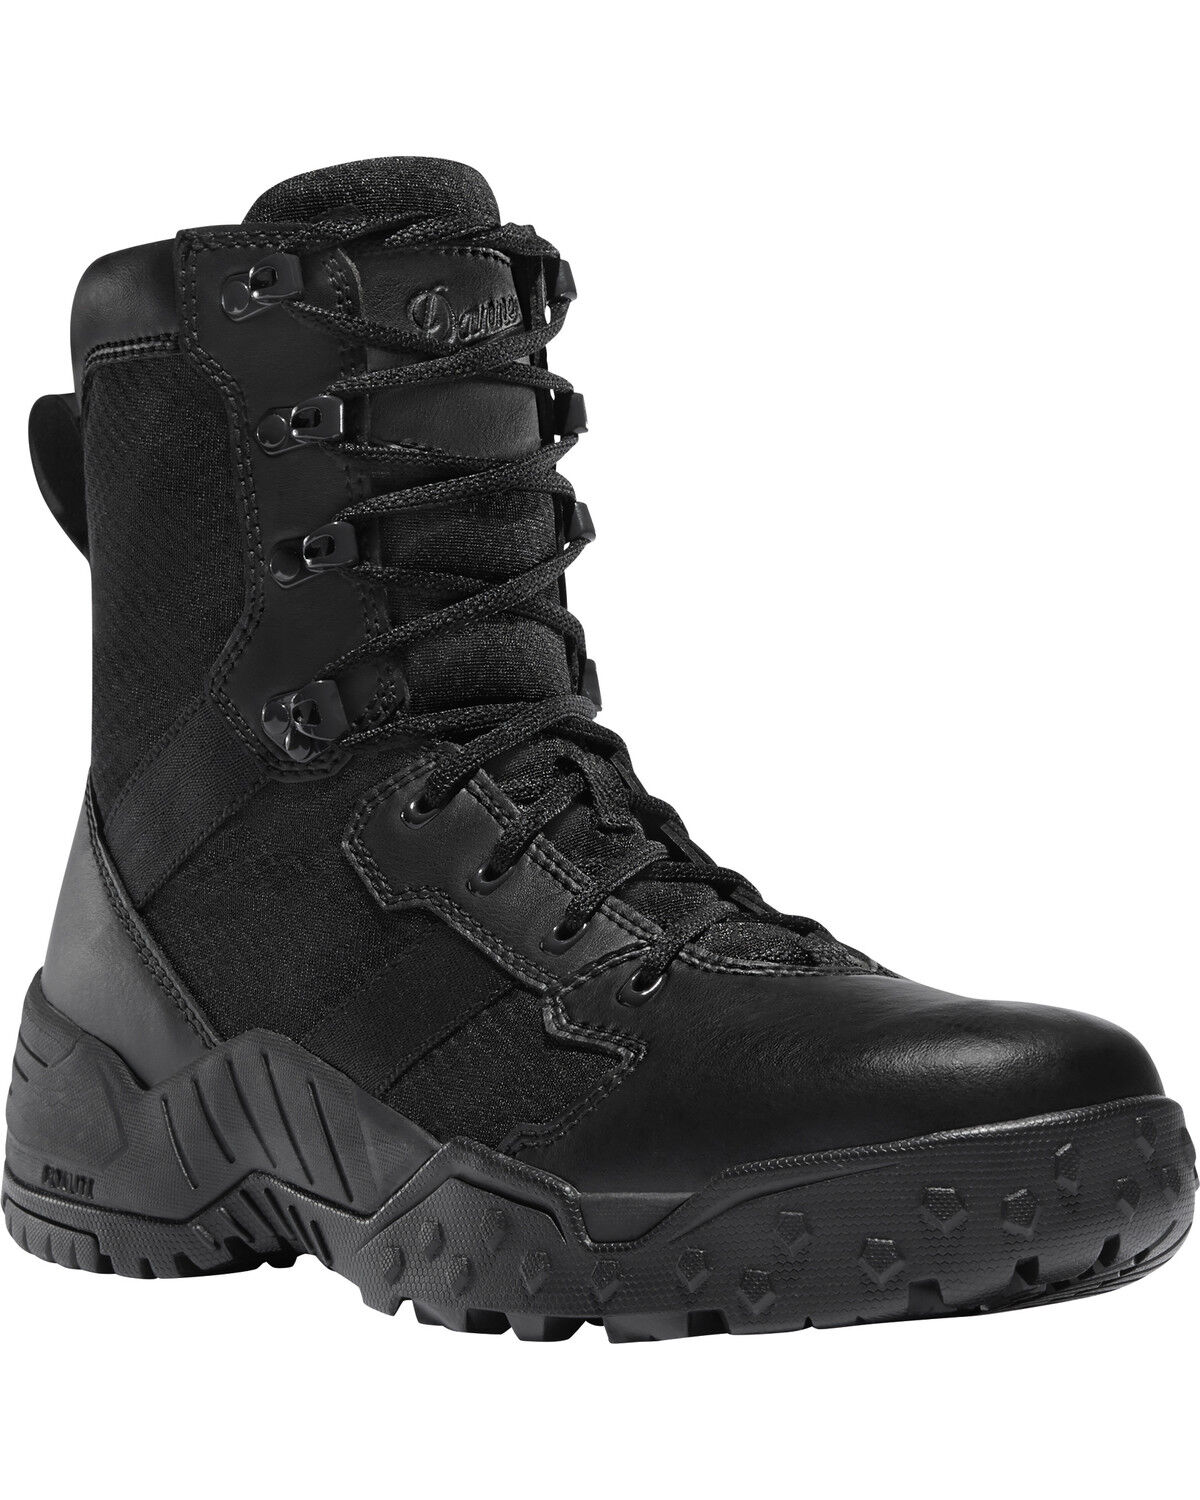 Tactical Boots - Round Toe